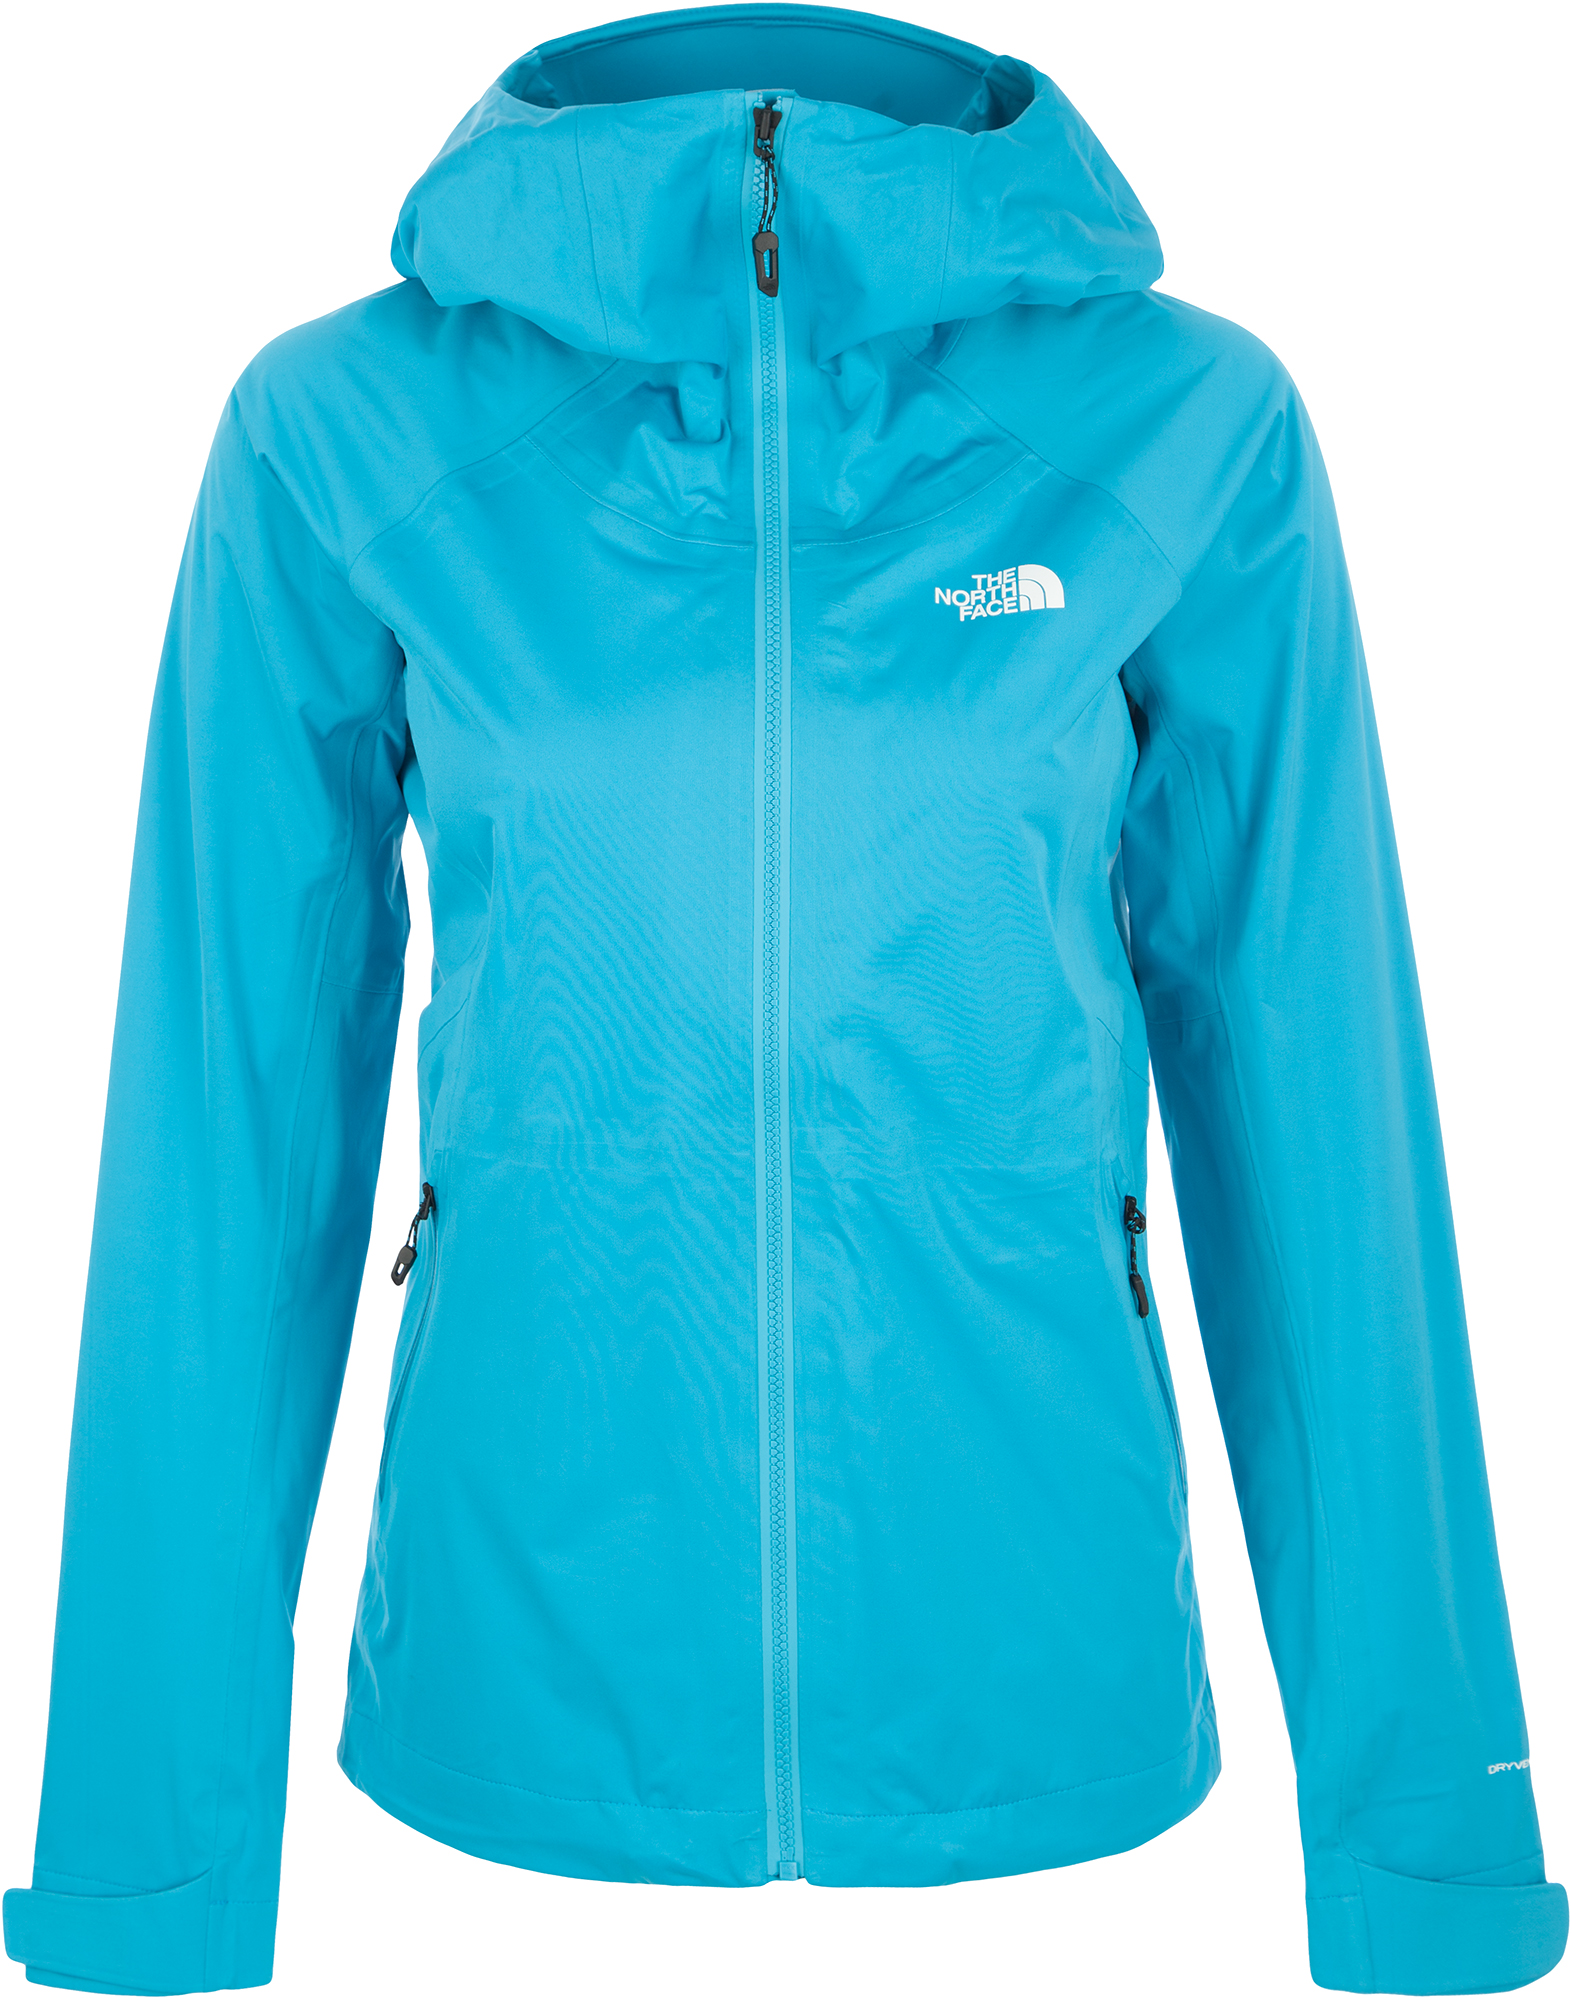 цена на The North Face Ветровка женская The North Face Impendor Apex Flex Light, размер 46